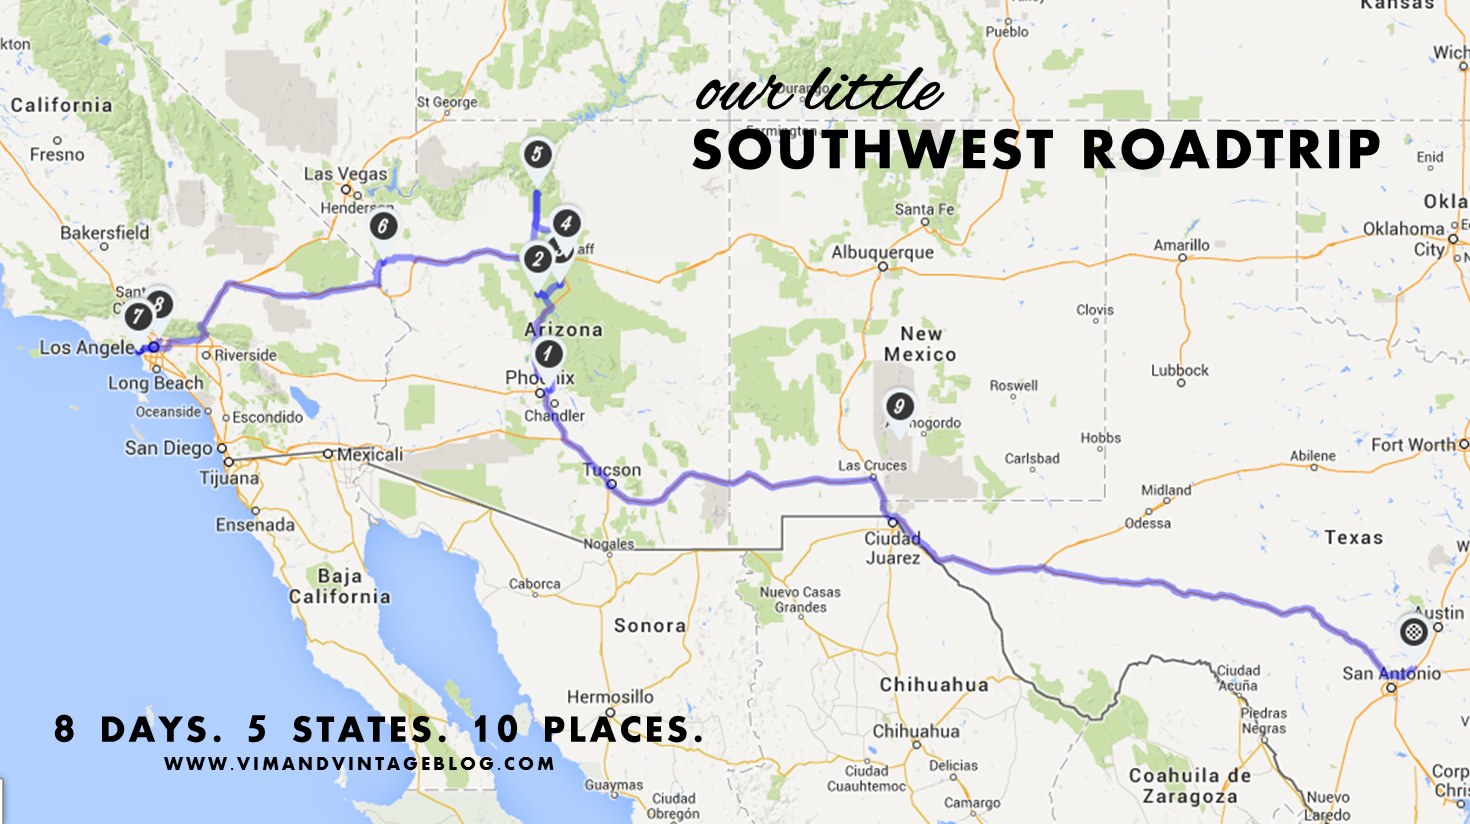 southwest-roadtrip-guide-vim-vintage-blog1 Road Map Southwest Usa on map southwest usa map, southwest united states map, southeast coast usa road map, south west california airports map, maple ridge british columbia map, southwest usa relief map, southwest usa weather, south west highway map, mexico usa road map, southwest usa airport map, west coast usa road map, southwest travel map, south west coast usa map, southwest usa travel, western usa road map, continental usa road map, southwest missouri road map, national parks south west us map, southwest usa water,